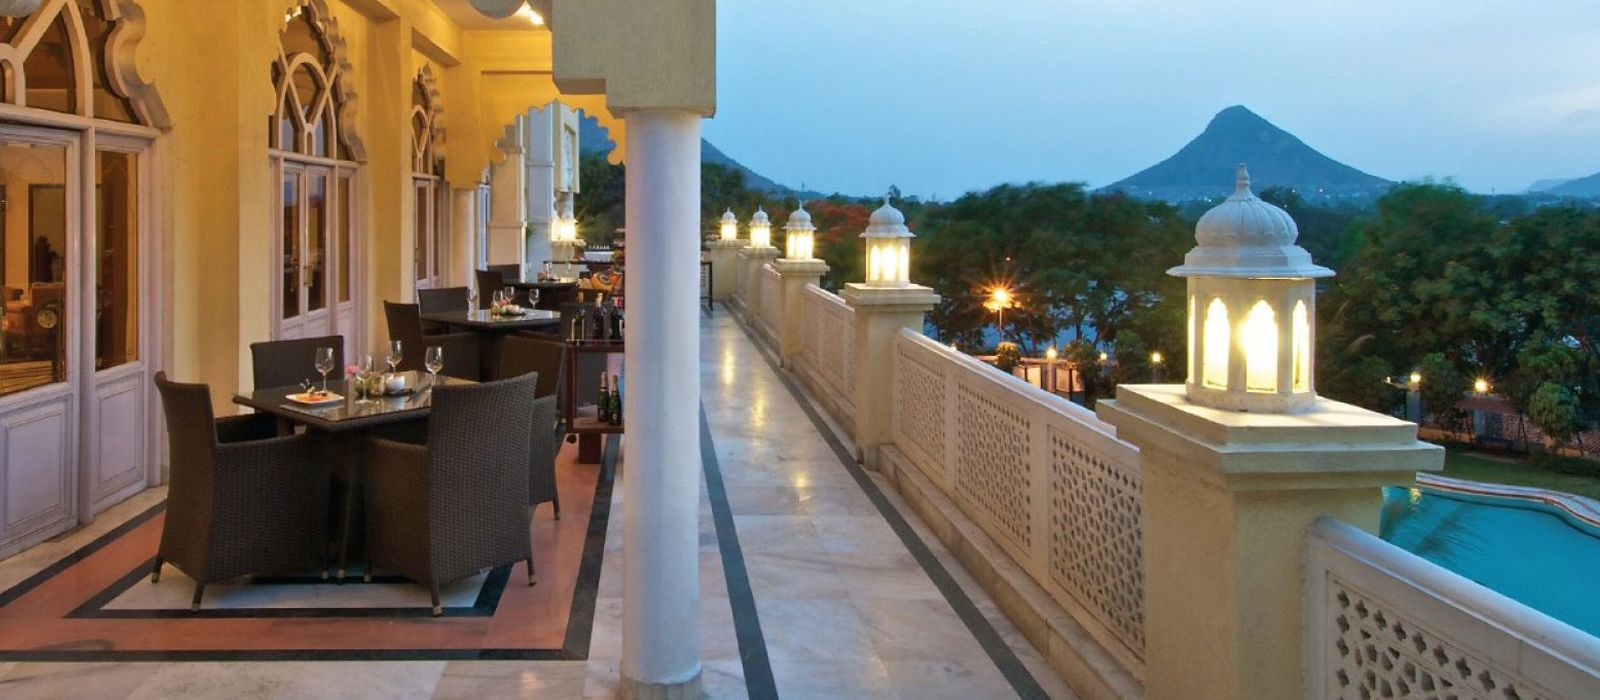 Hotel The Gateway  Ambad Central & West India